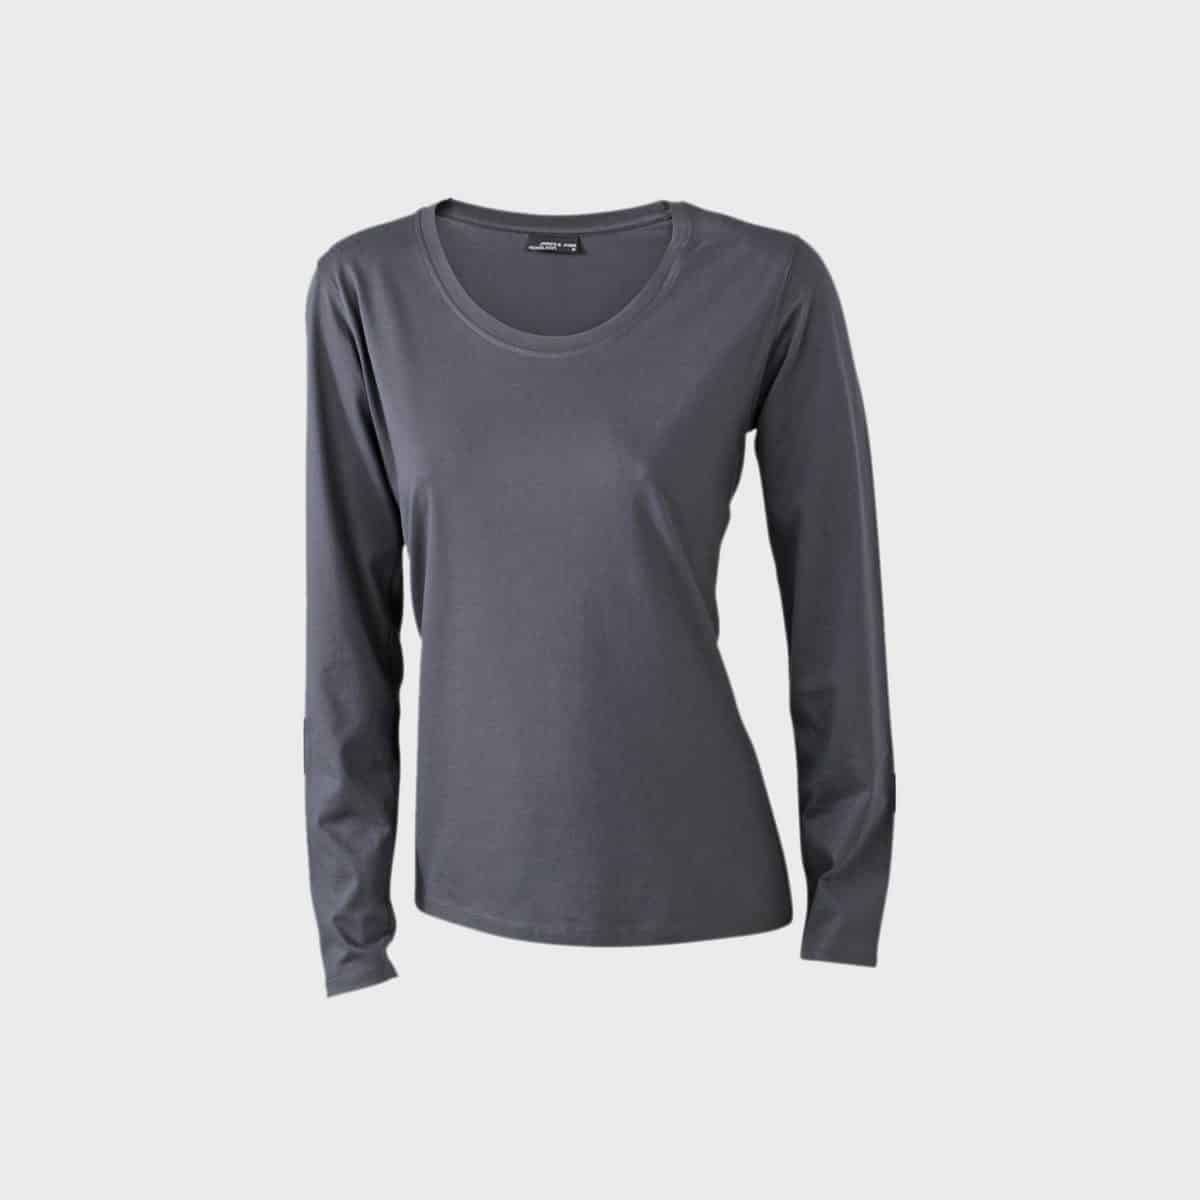 langarm-shirt-cotton-damen-graphite-kaufen-besticken_stickmanufaktur